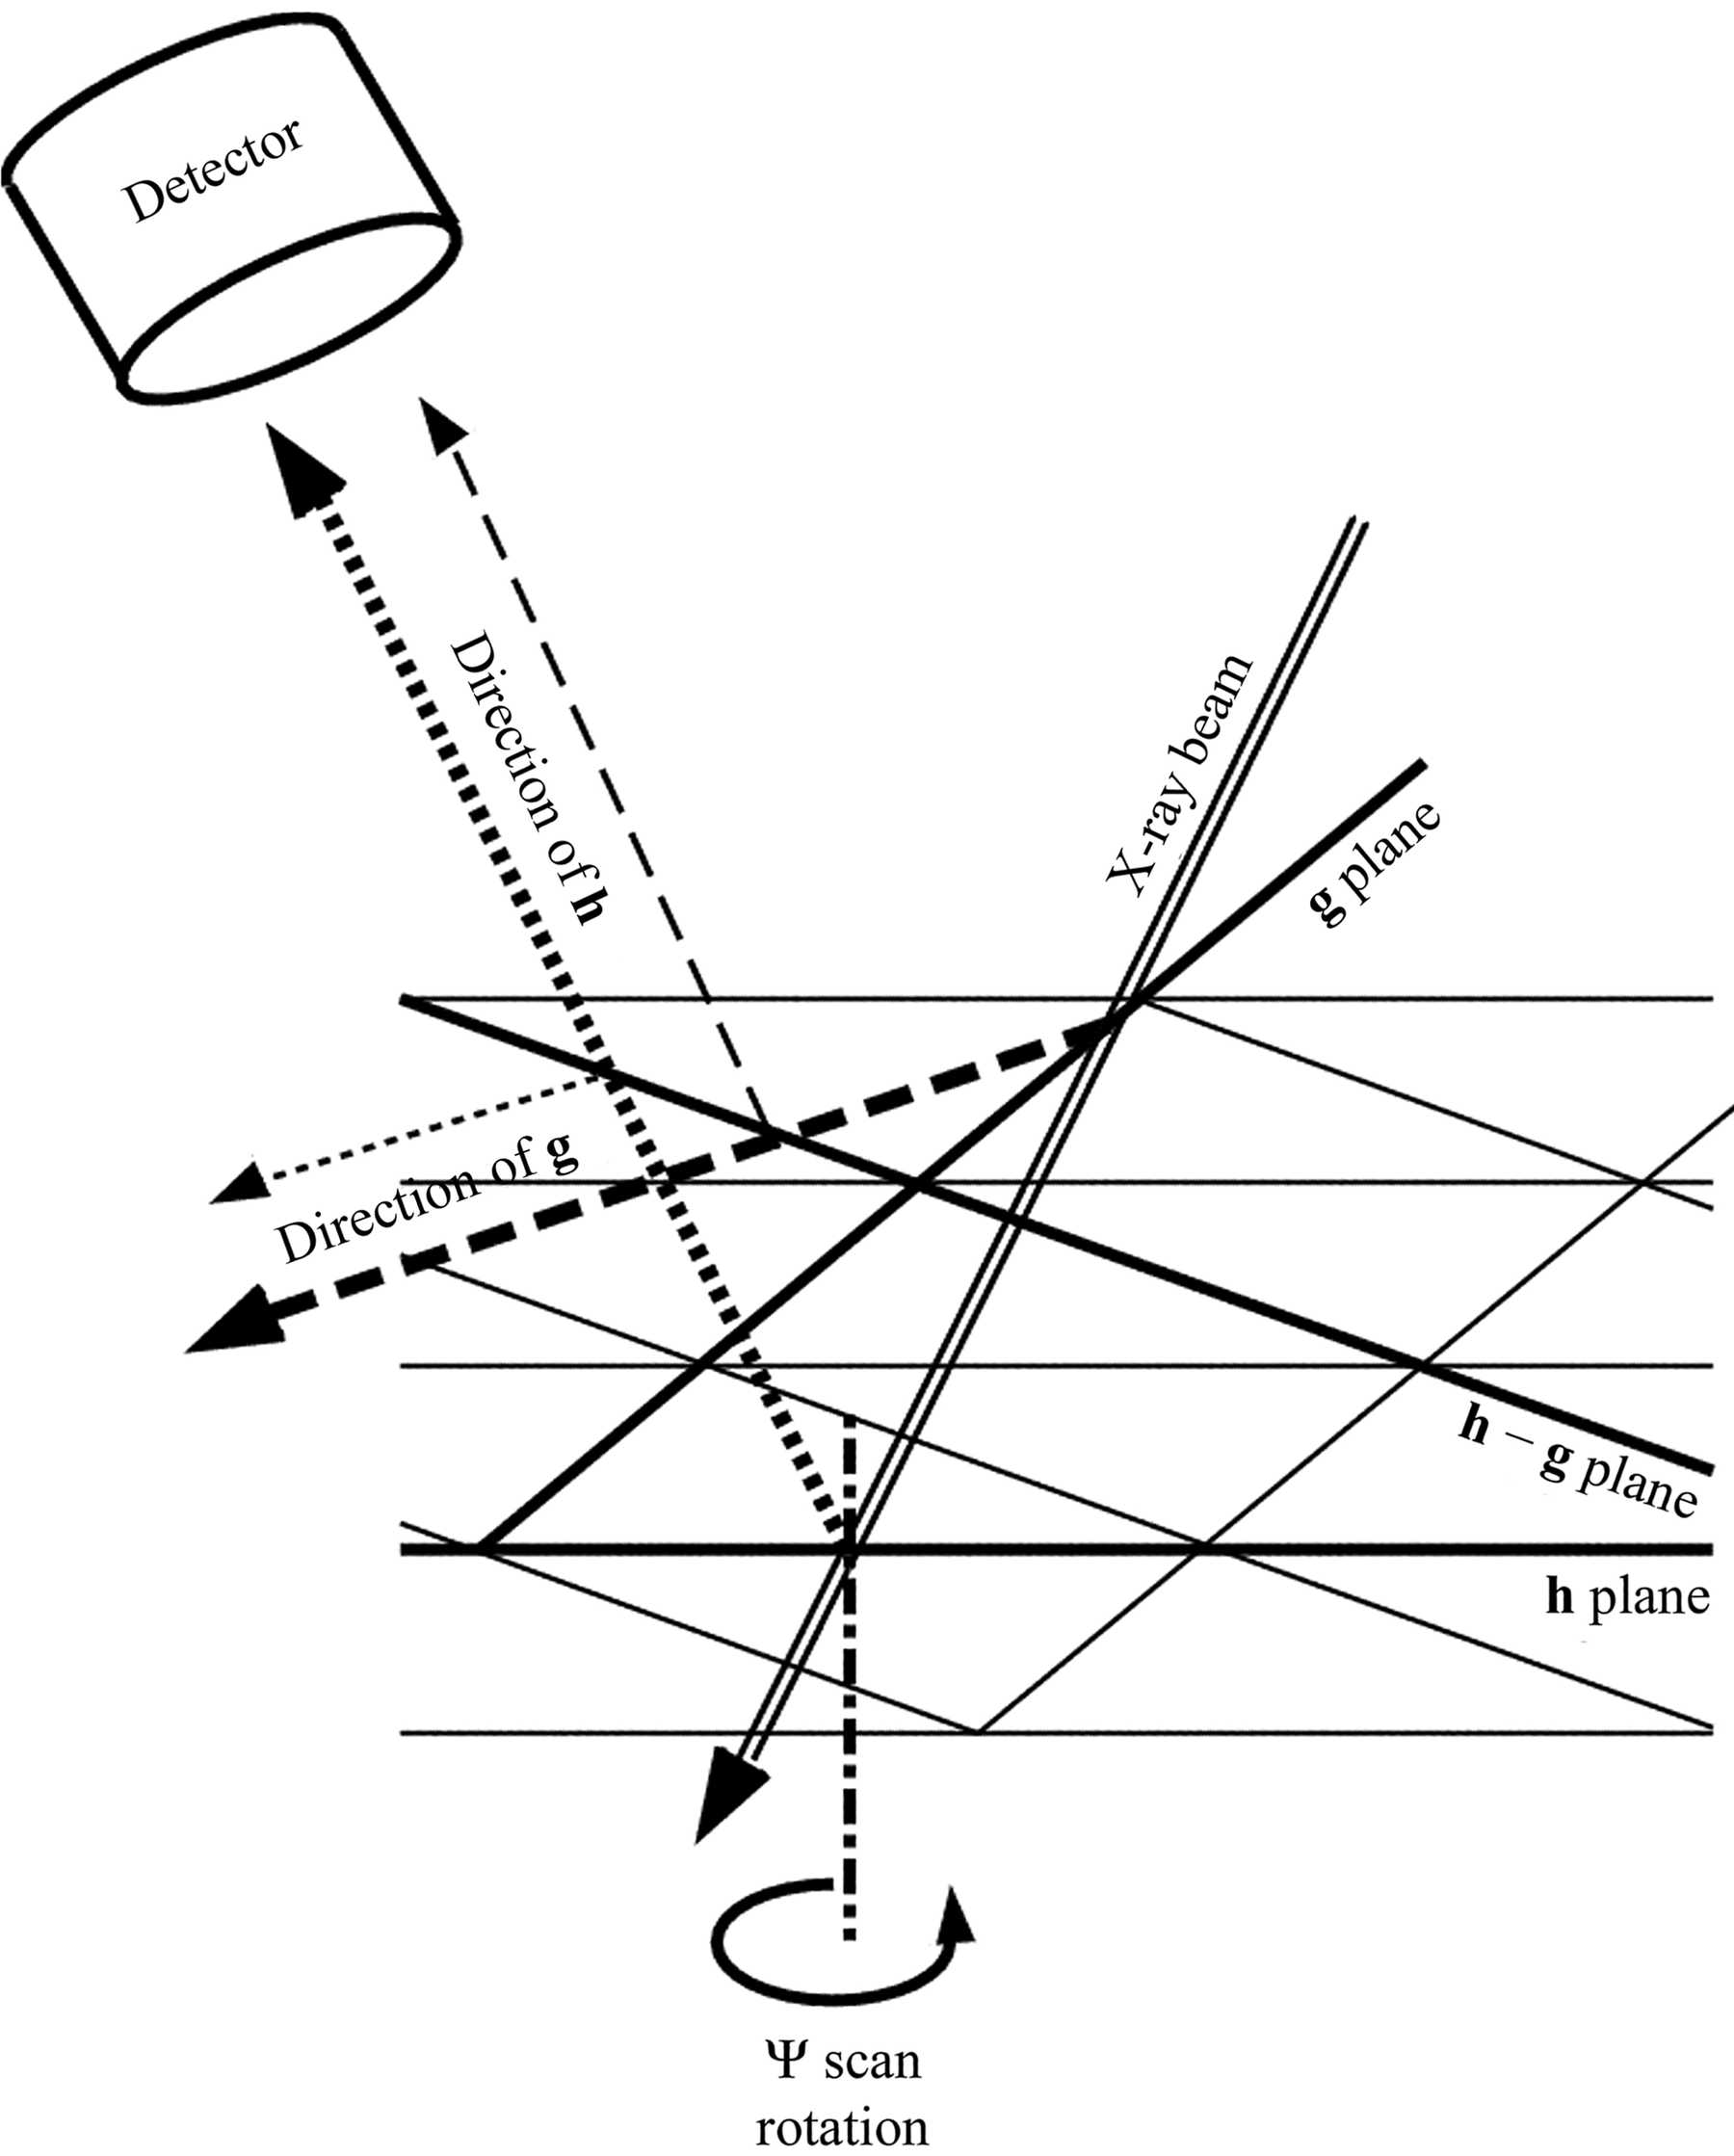 iucr experimental methods for measuring accurate high litude I-Beam VSH Beam iucr experimental methods for measuring accurate high litude phases and their importance in isomorphous replacement experiments